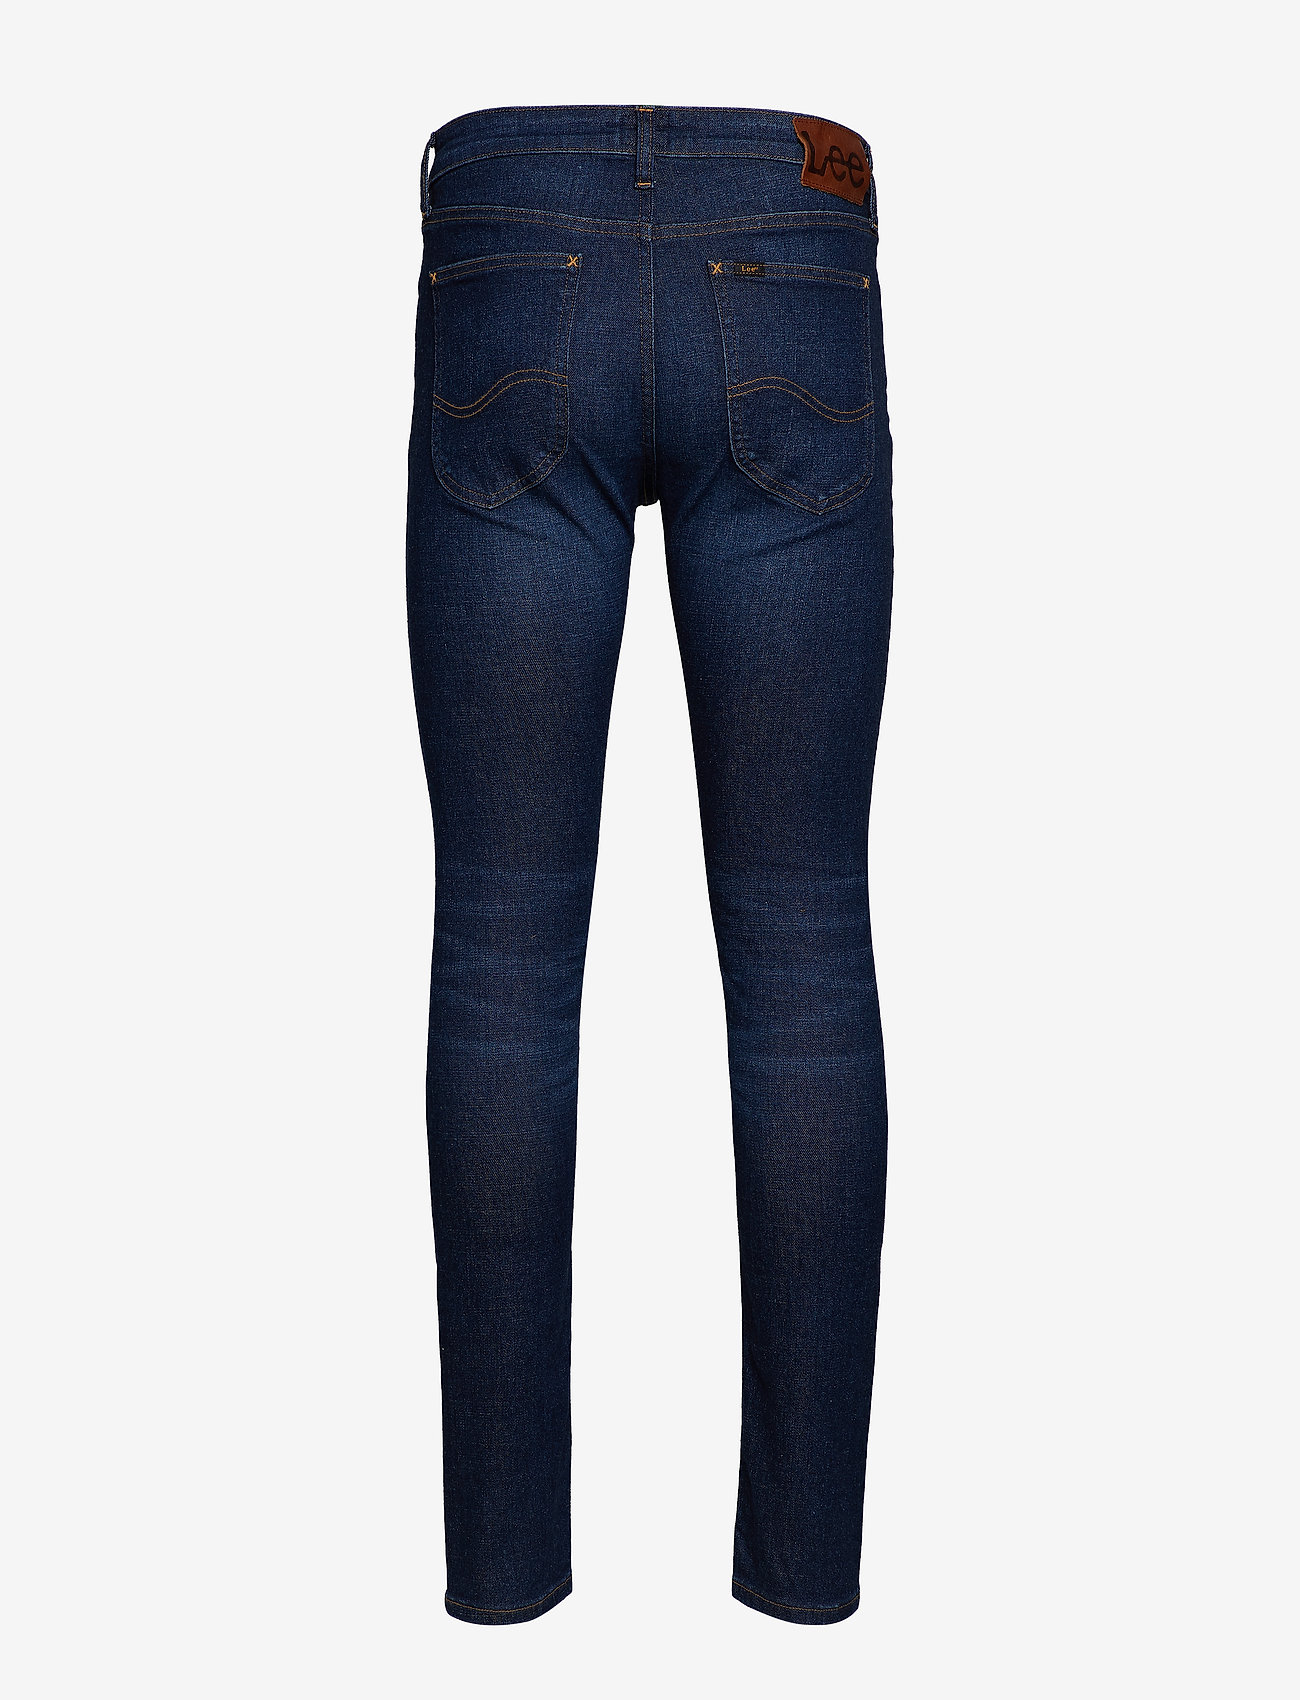 Lee Jeans MALONE - Jeans TRUE BLUE - Menn Klær